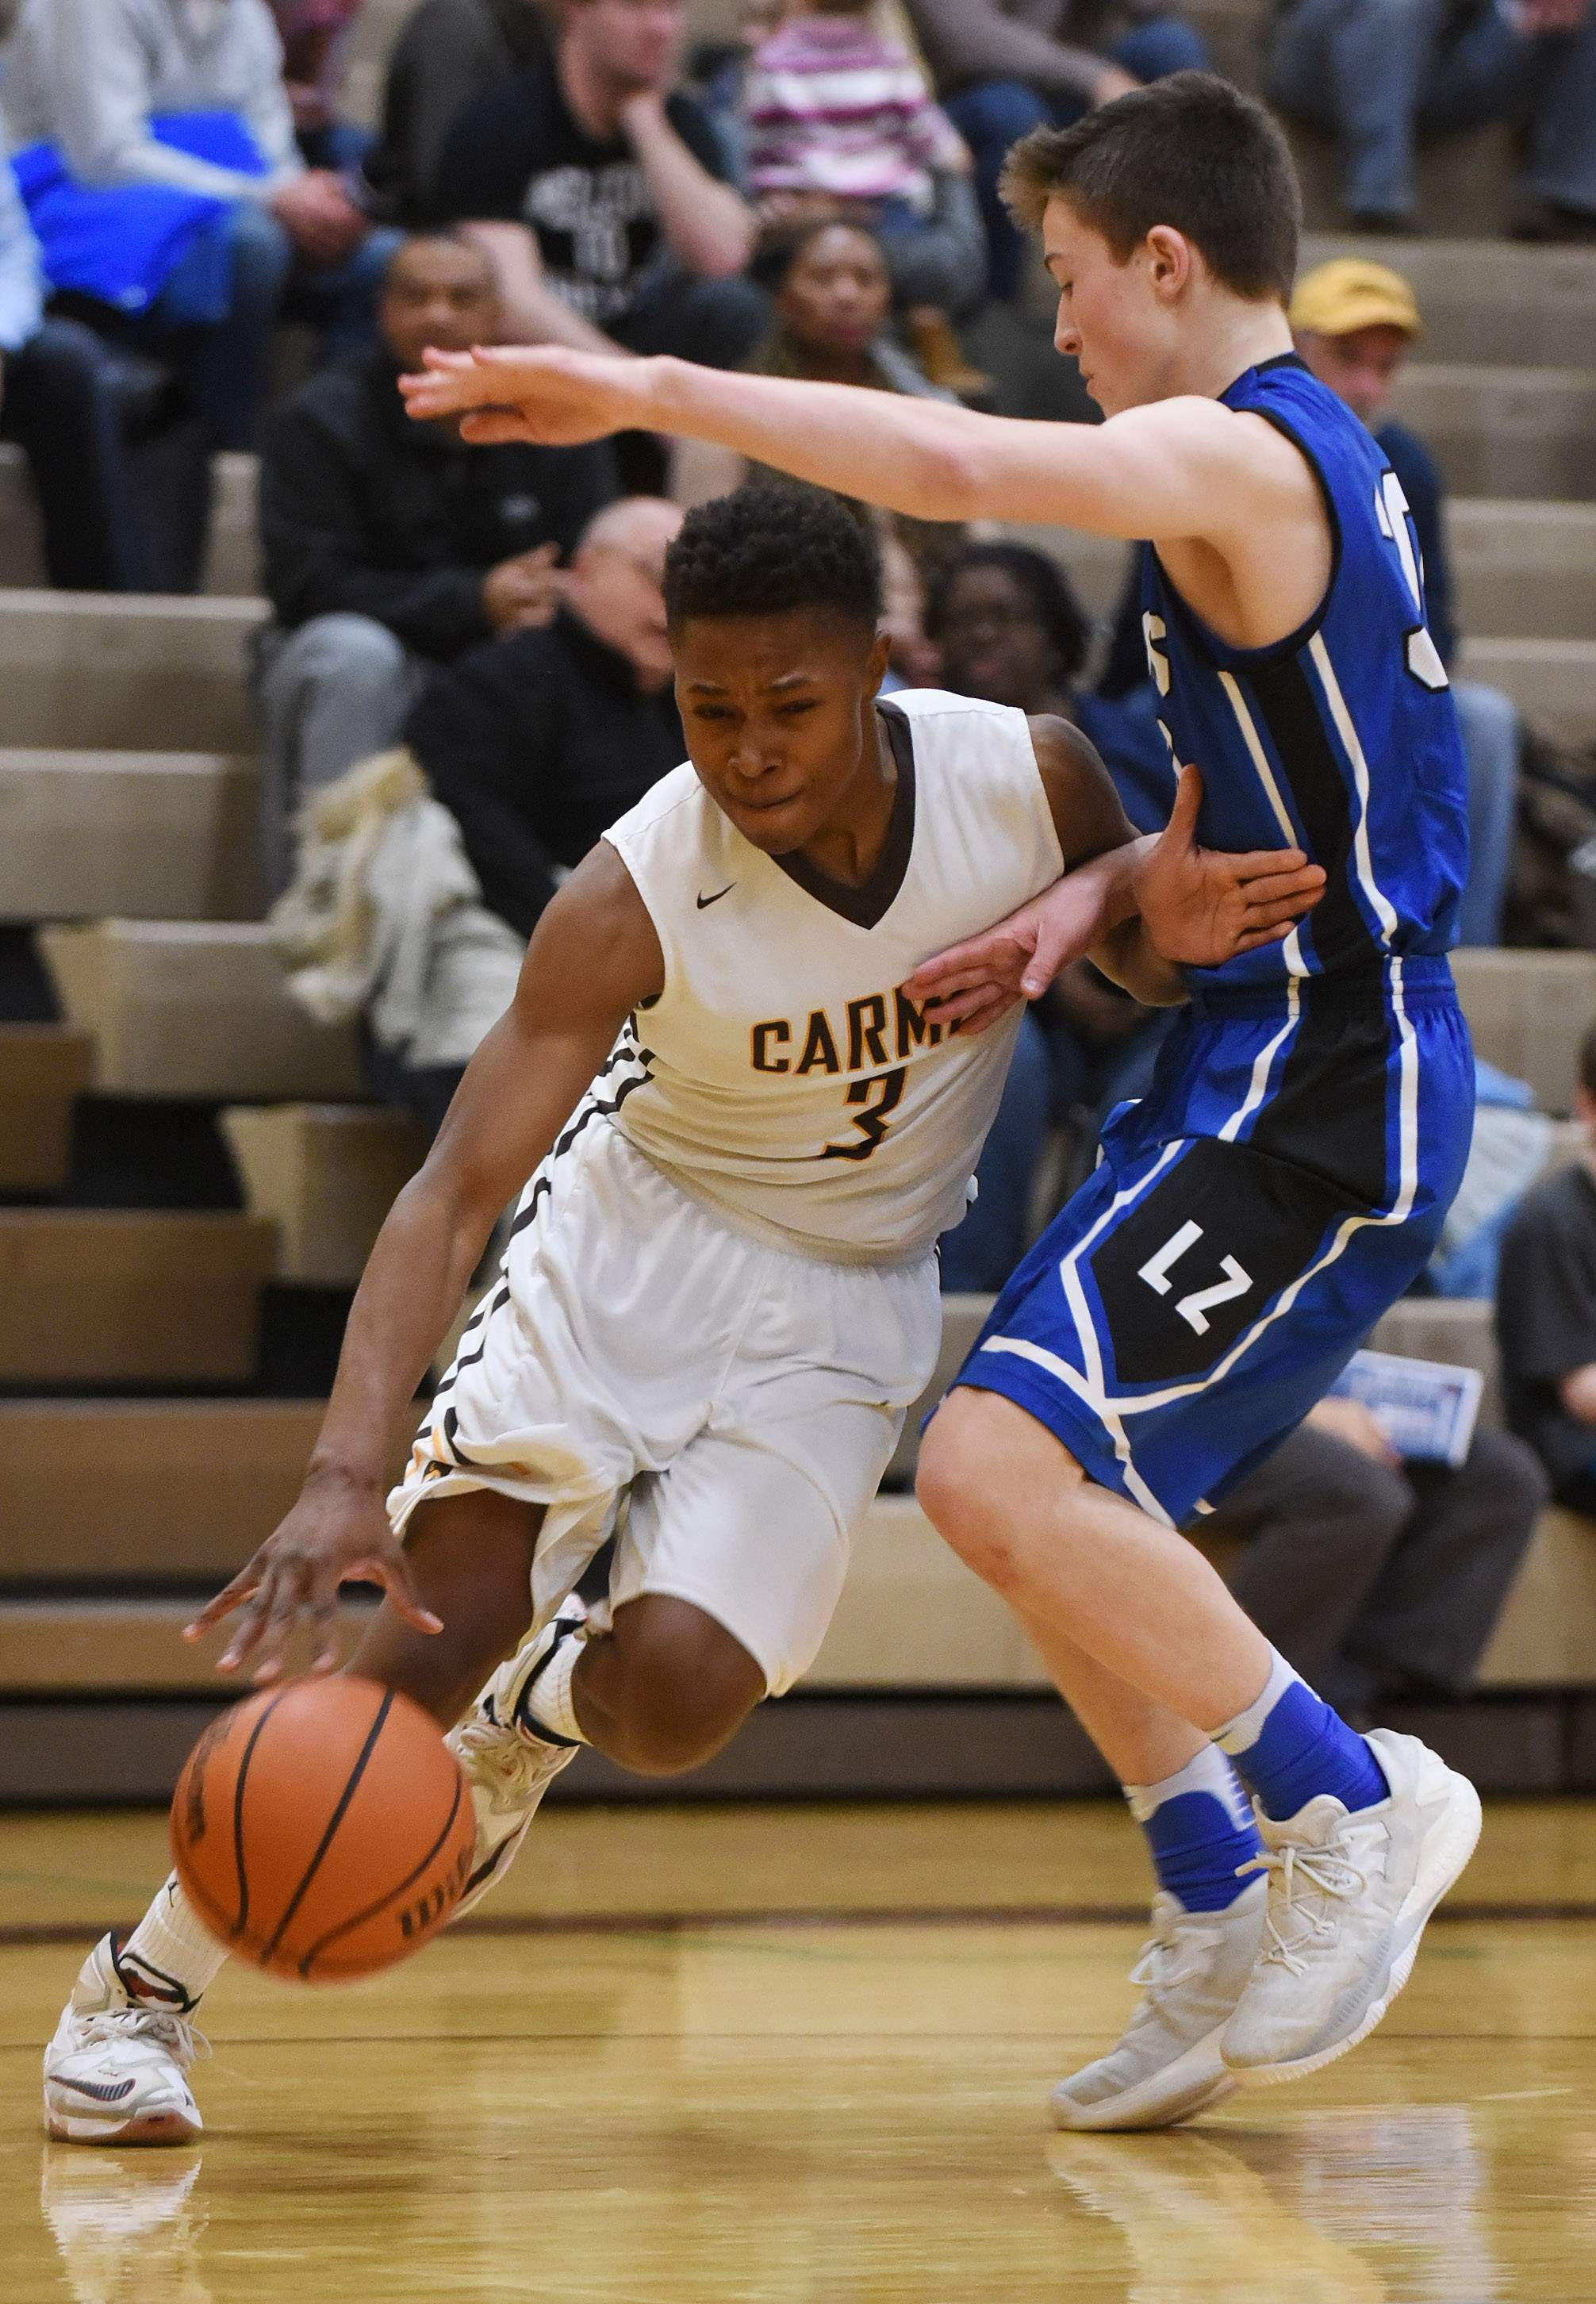 Carmel's Zion Kilpatrick, left, tries to make a move past Lake Zurich's Will Tucker during Saturday's game in Mundelein.